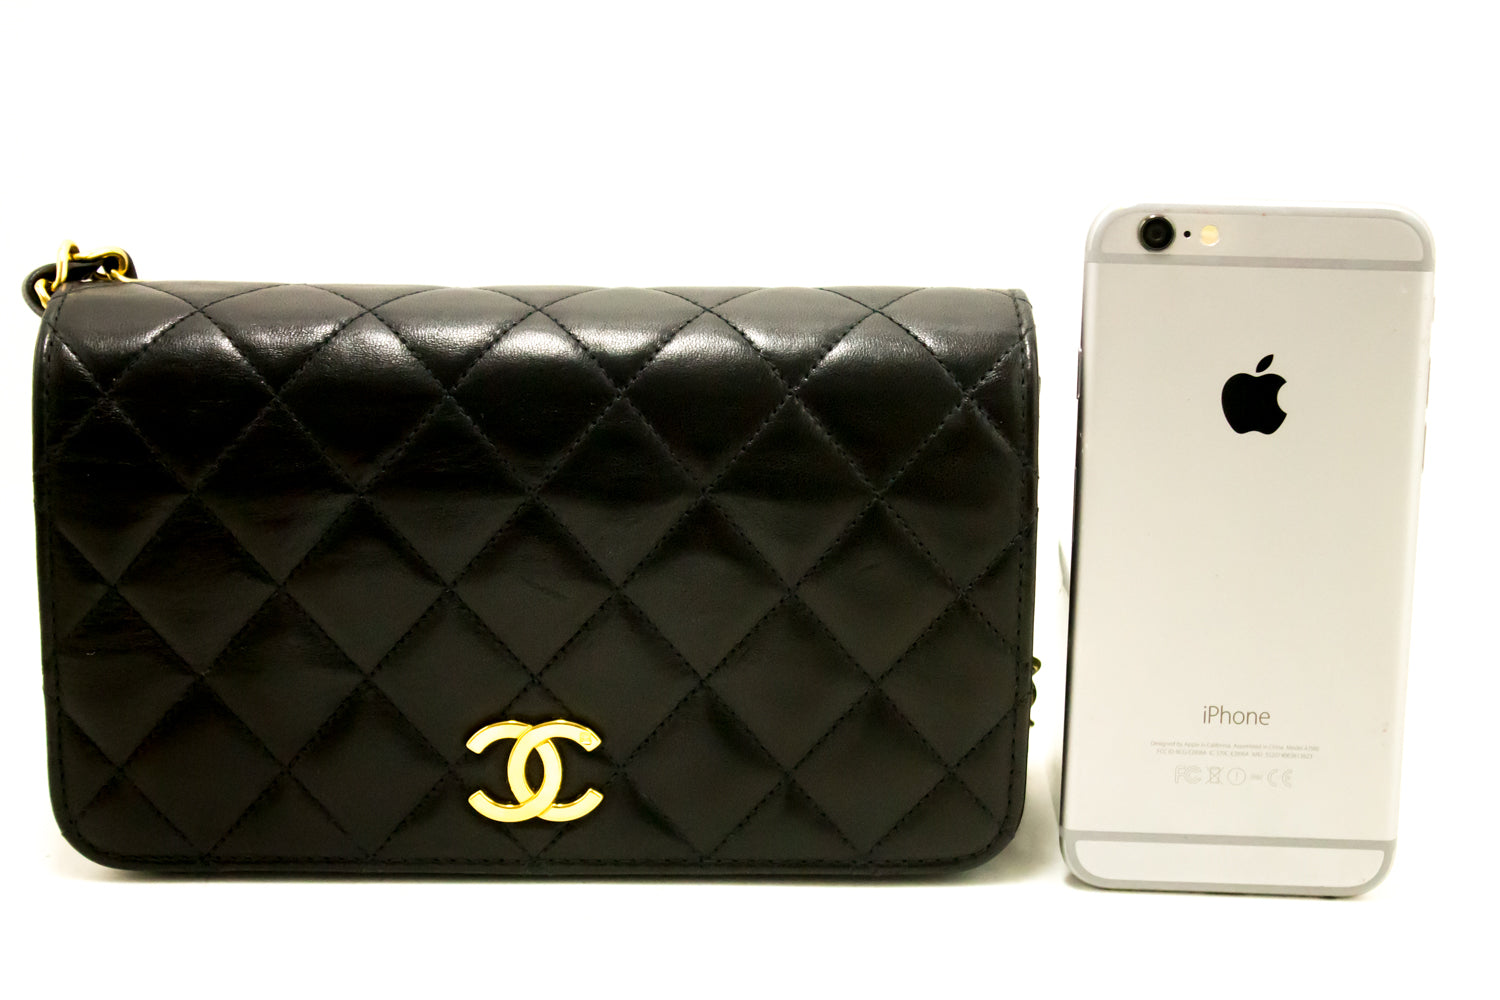 e2f0b898689a ... CHANEL Small Chain Shoulder Bag Clutch Black Quilted Flap Lambskin k35- Chanel-hannari- ...